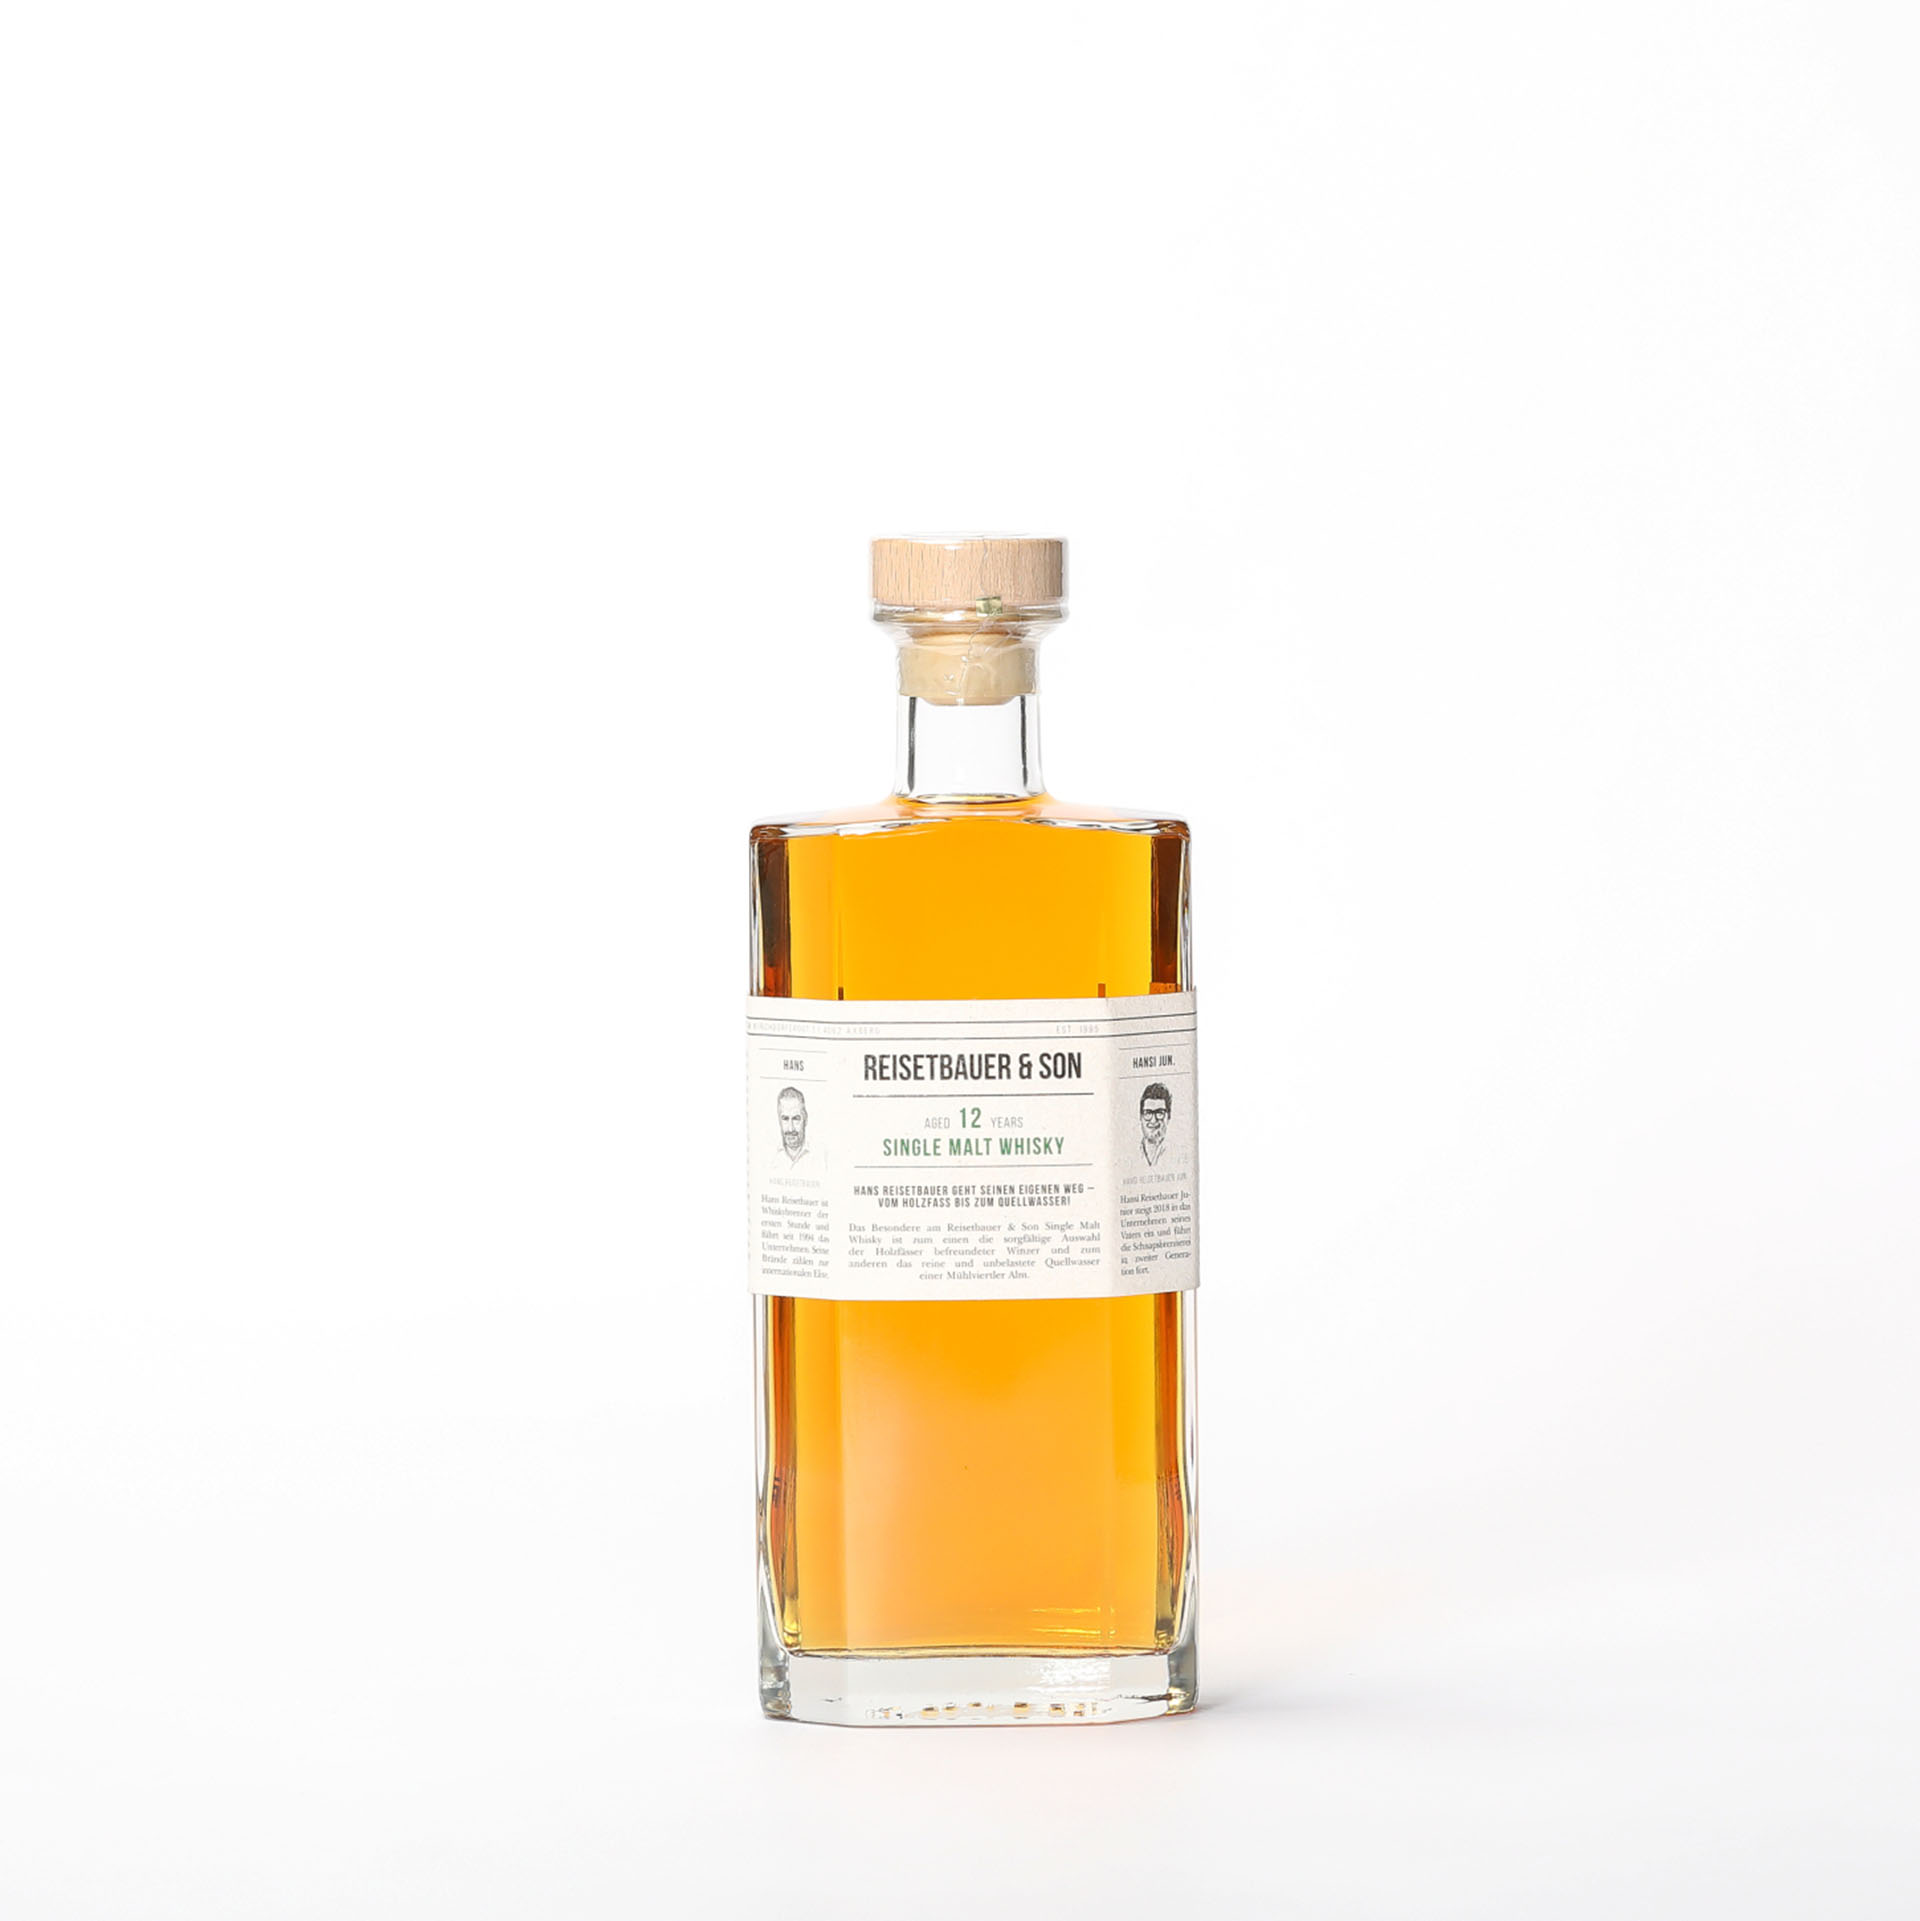 Single Malt Whisky 12 years - Reisetbauer & Son